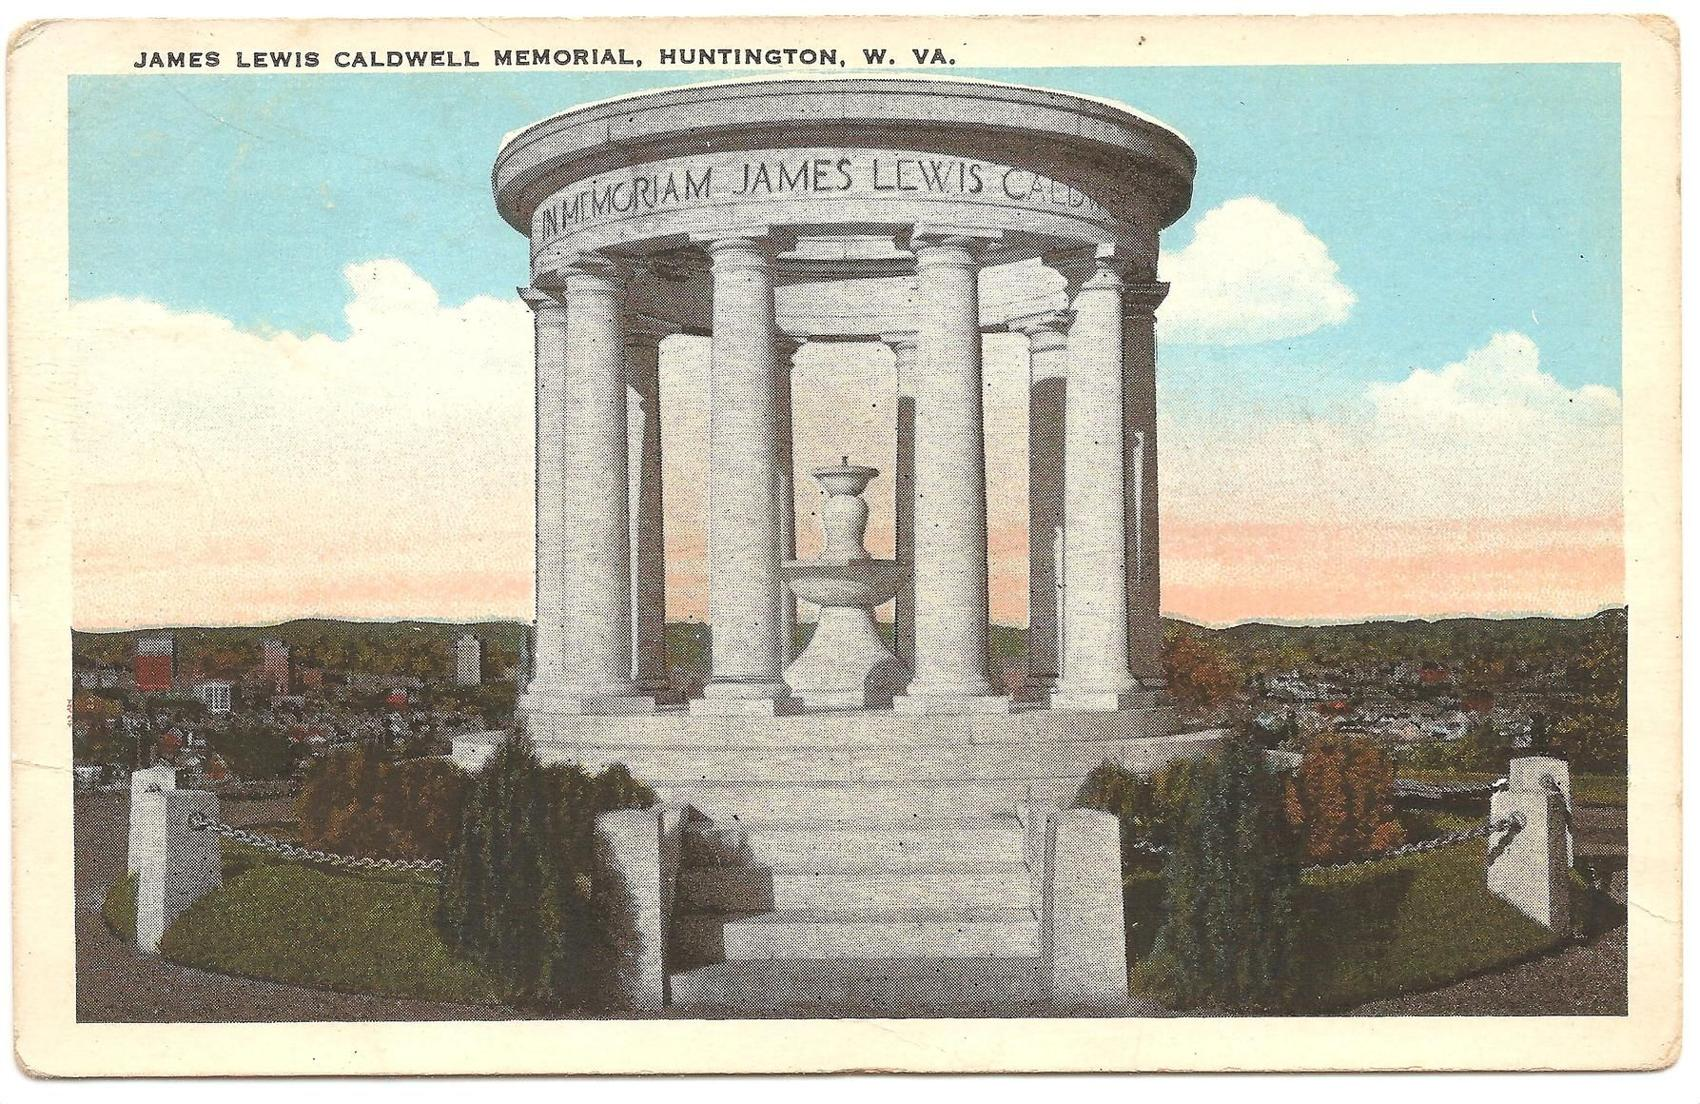 Postcard of the memorial